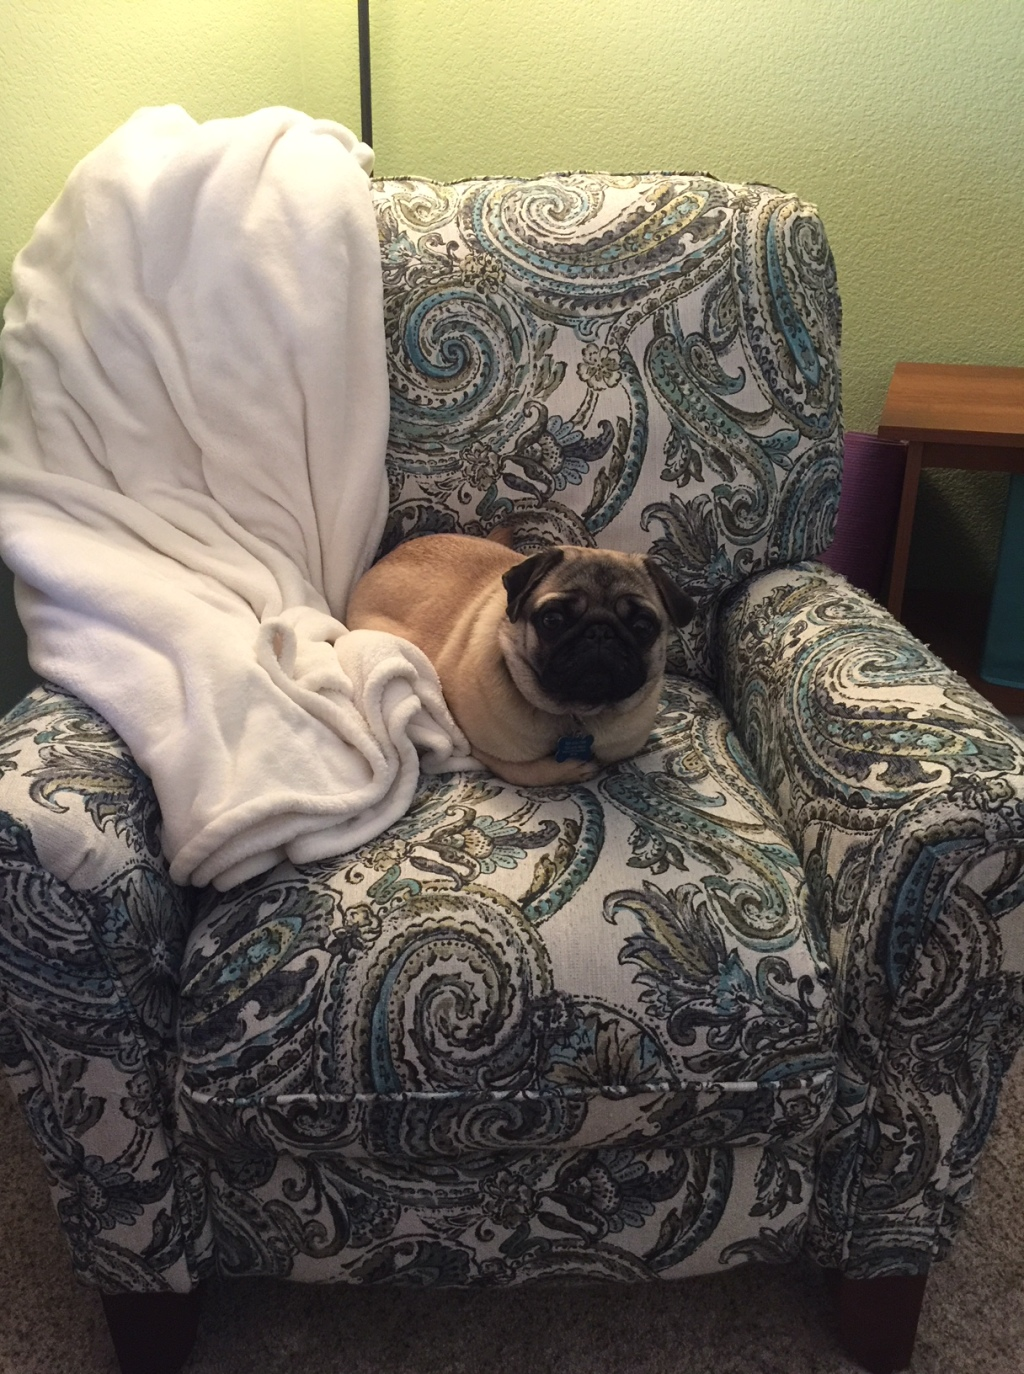 George on chair